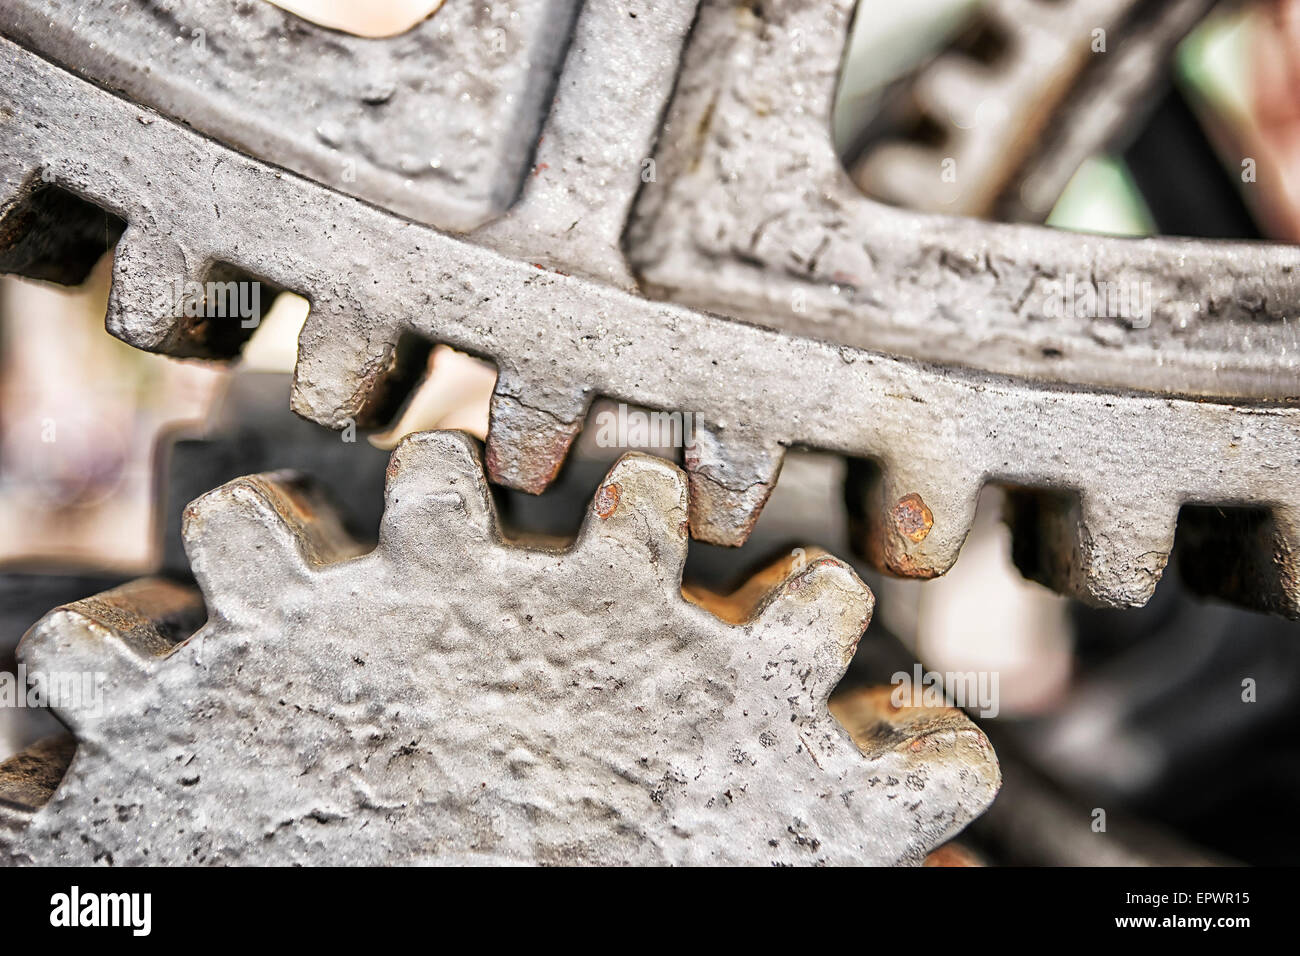 Closeup of two gears made of metal - Stock Image